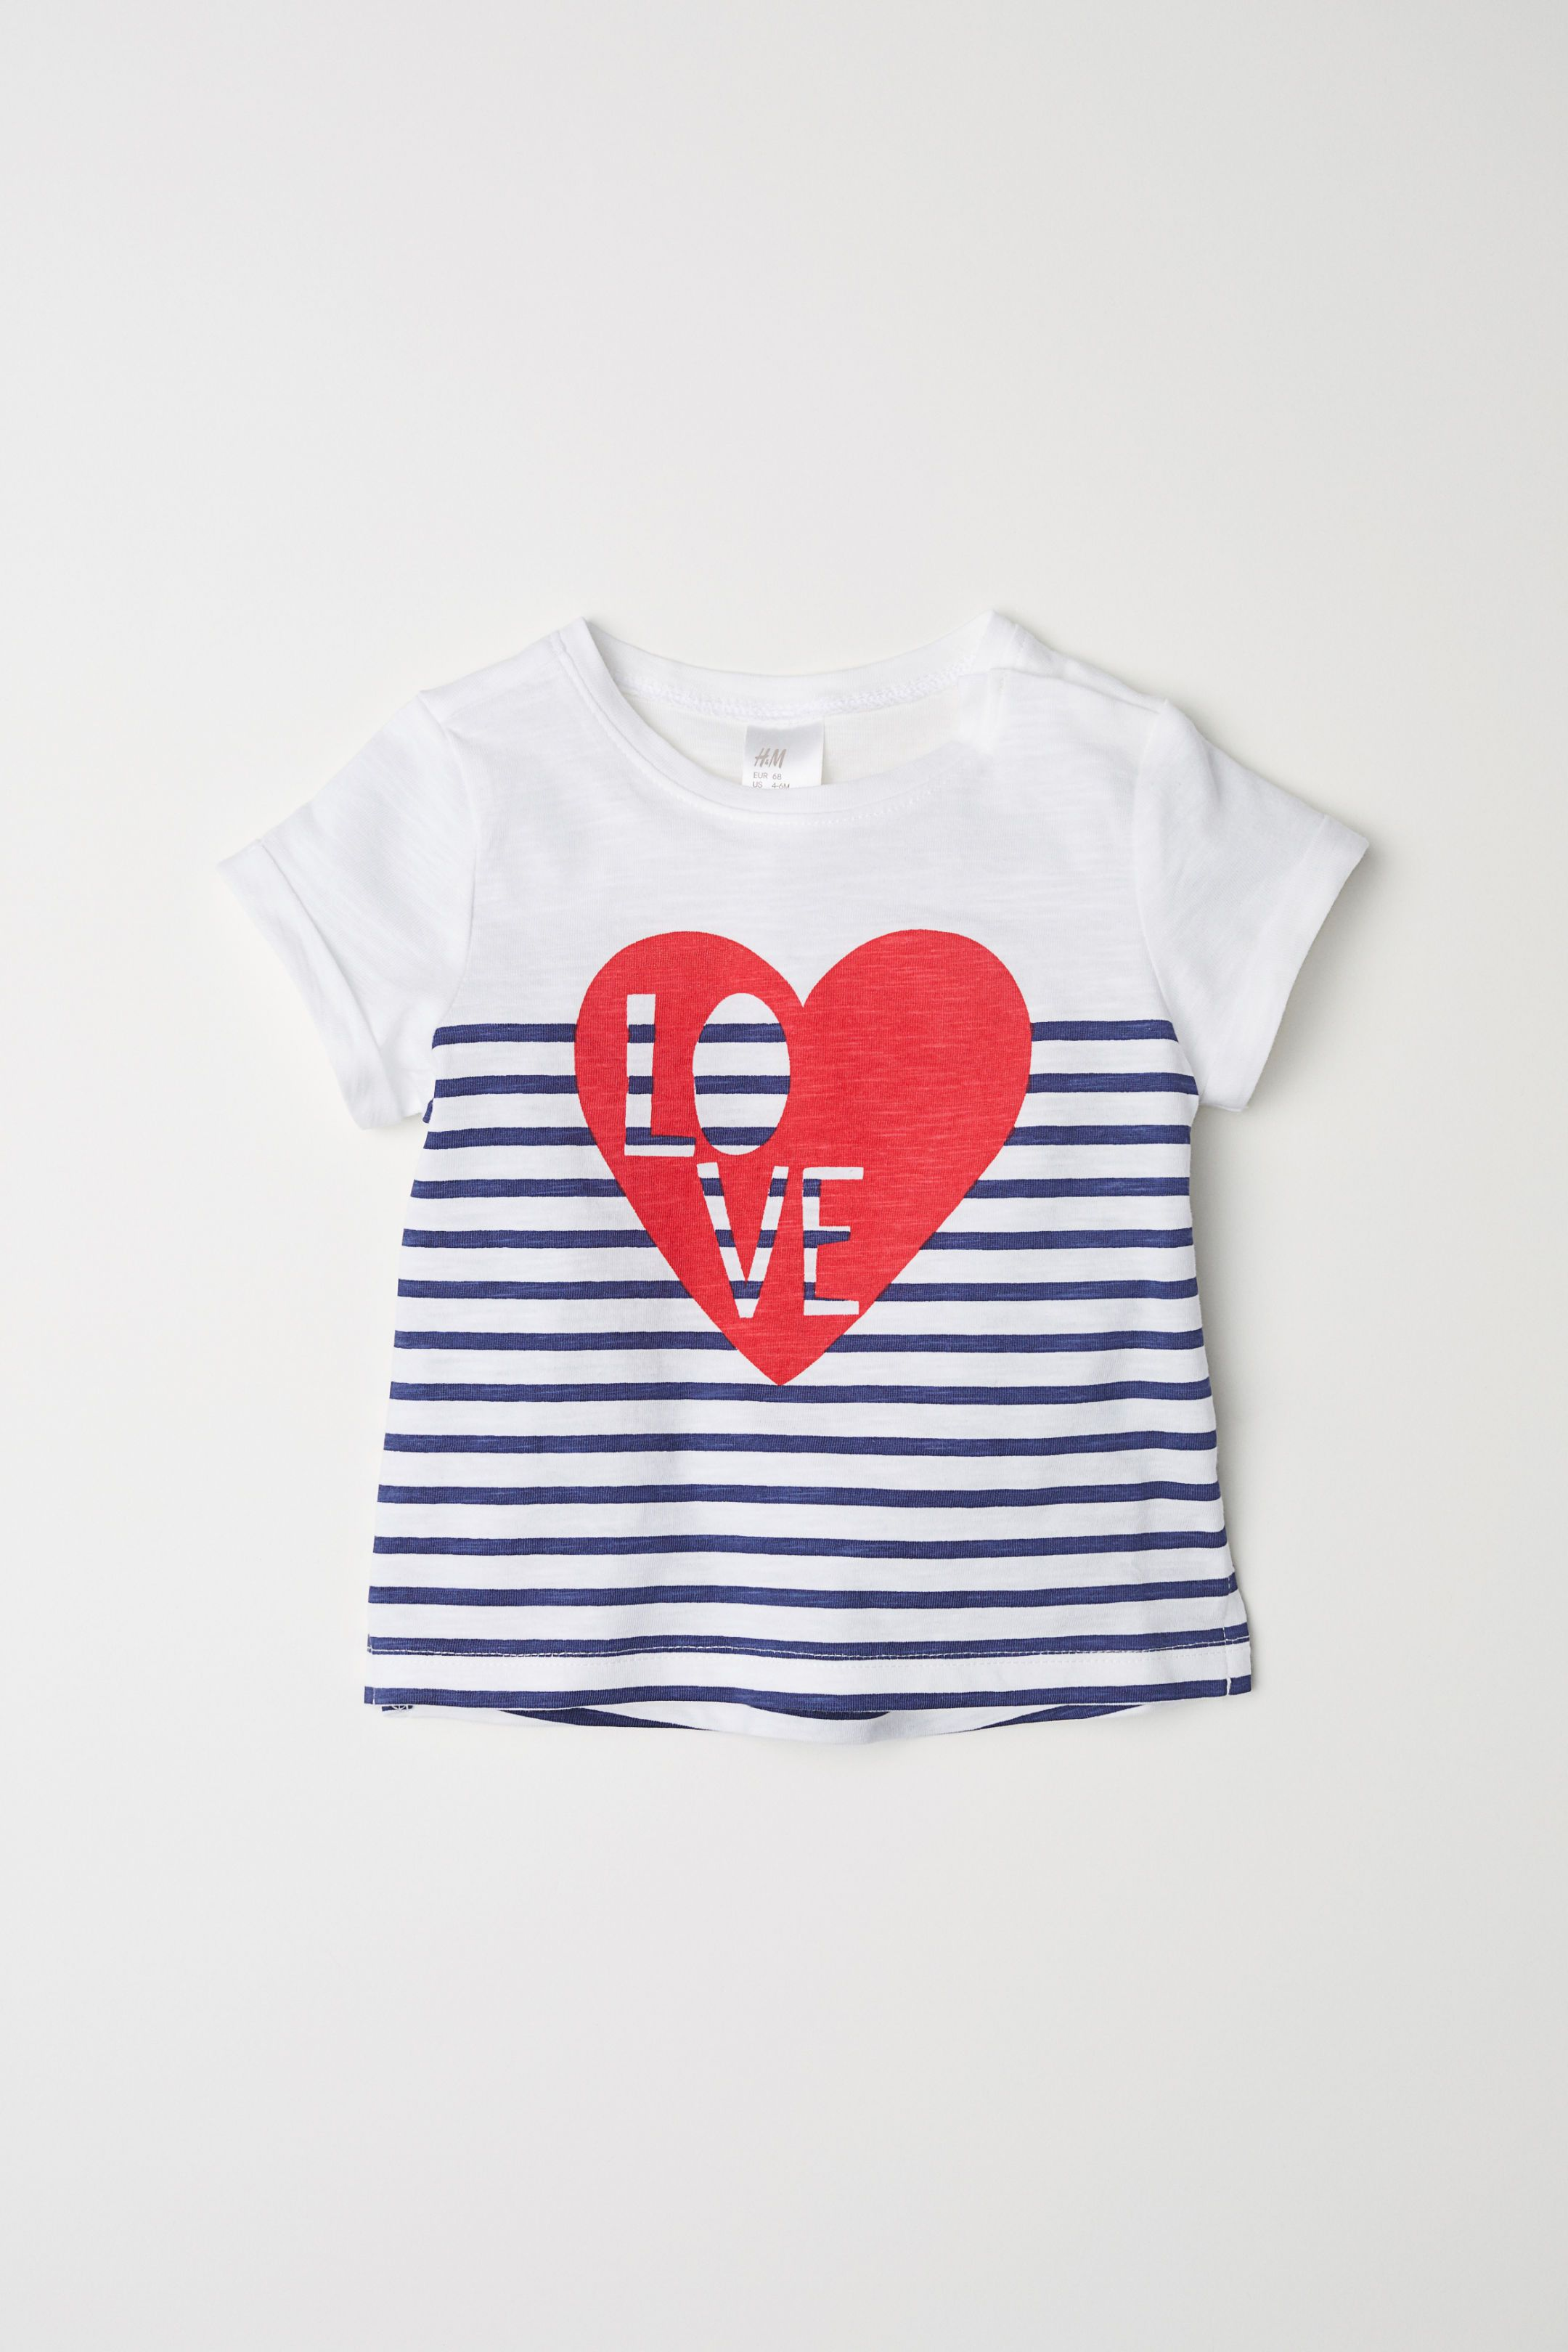 Reversible Heart Sequin T Shirt Lace Long Sleeves Tee Top Blouse for Kid Girls